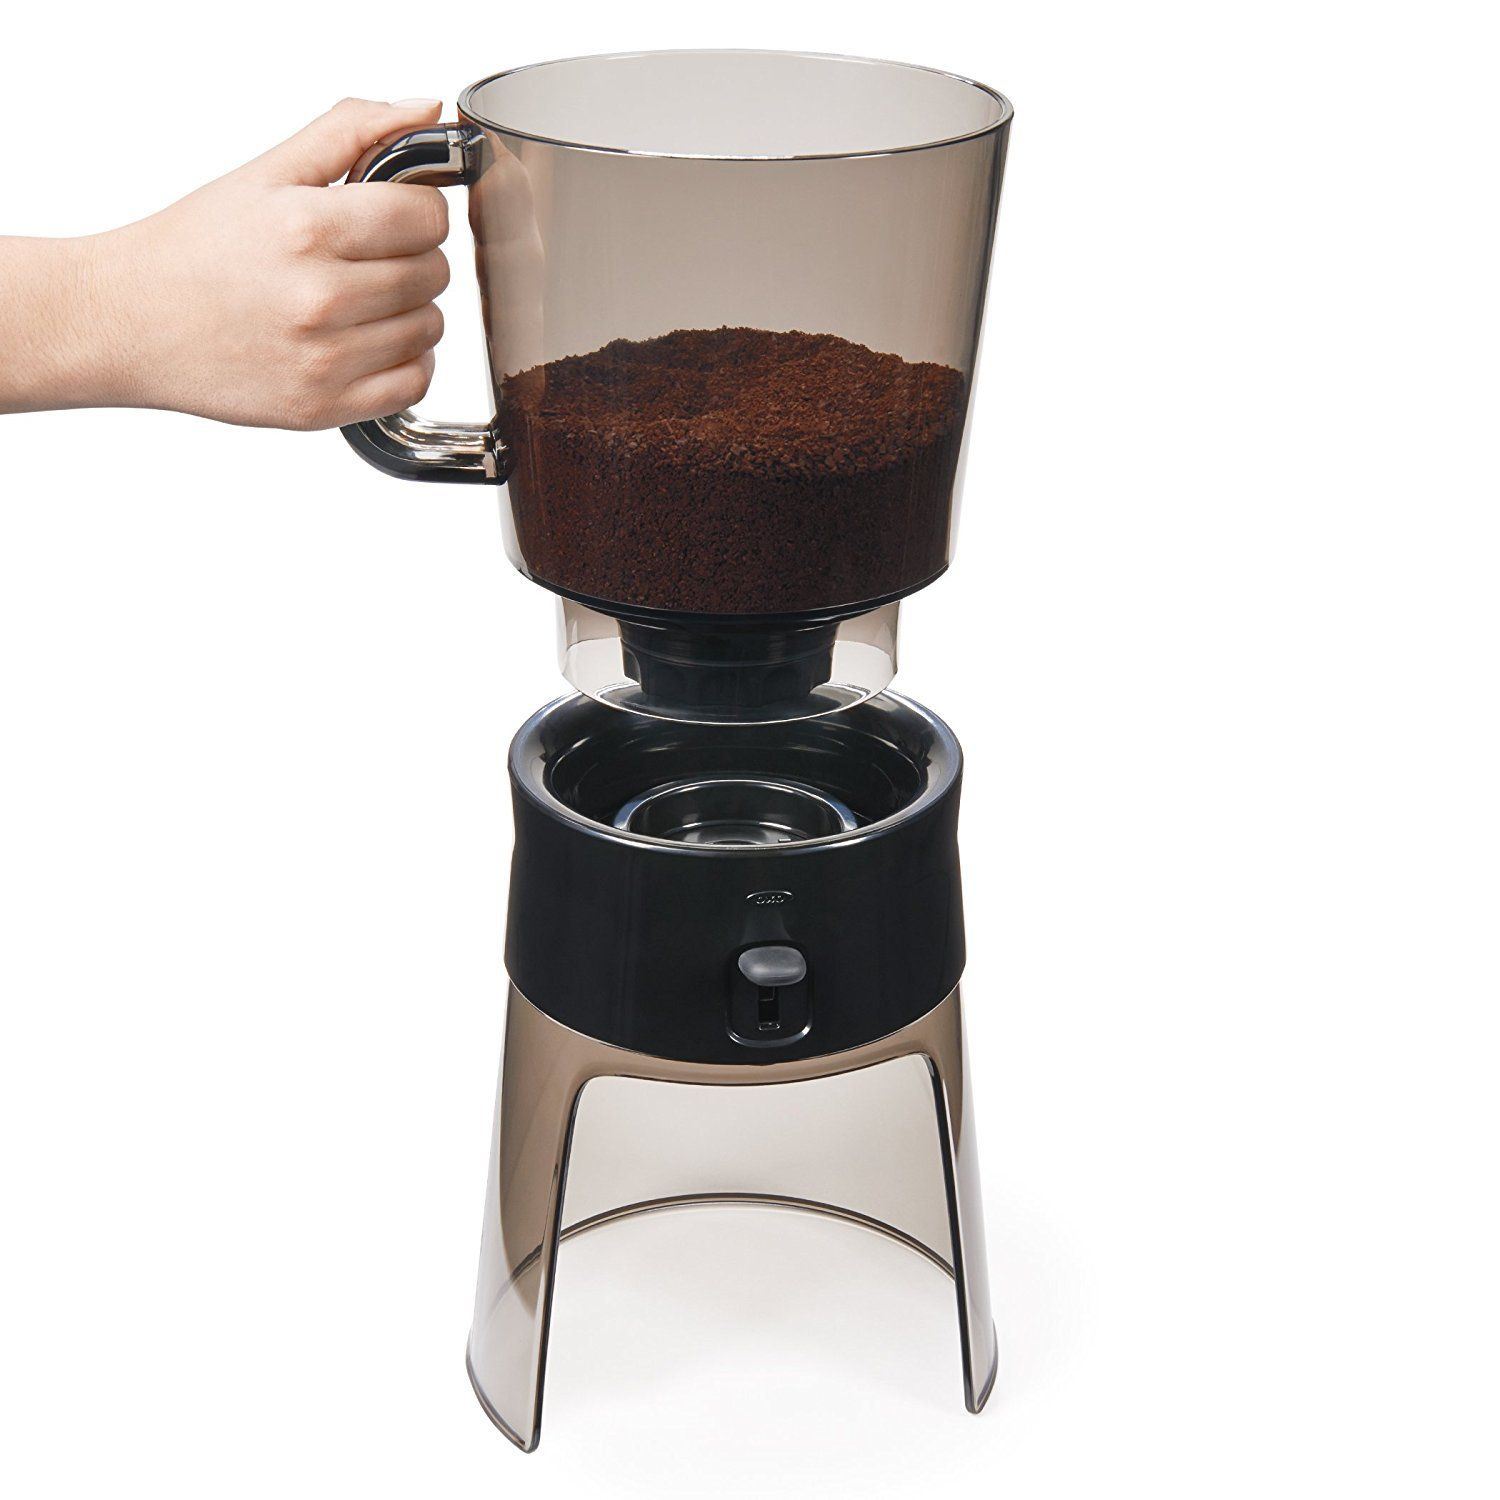 OXO Good Grips Cold Brew Coffee Maker with OXO Good Grips